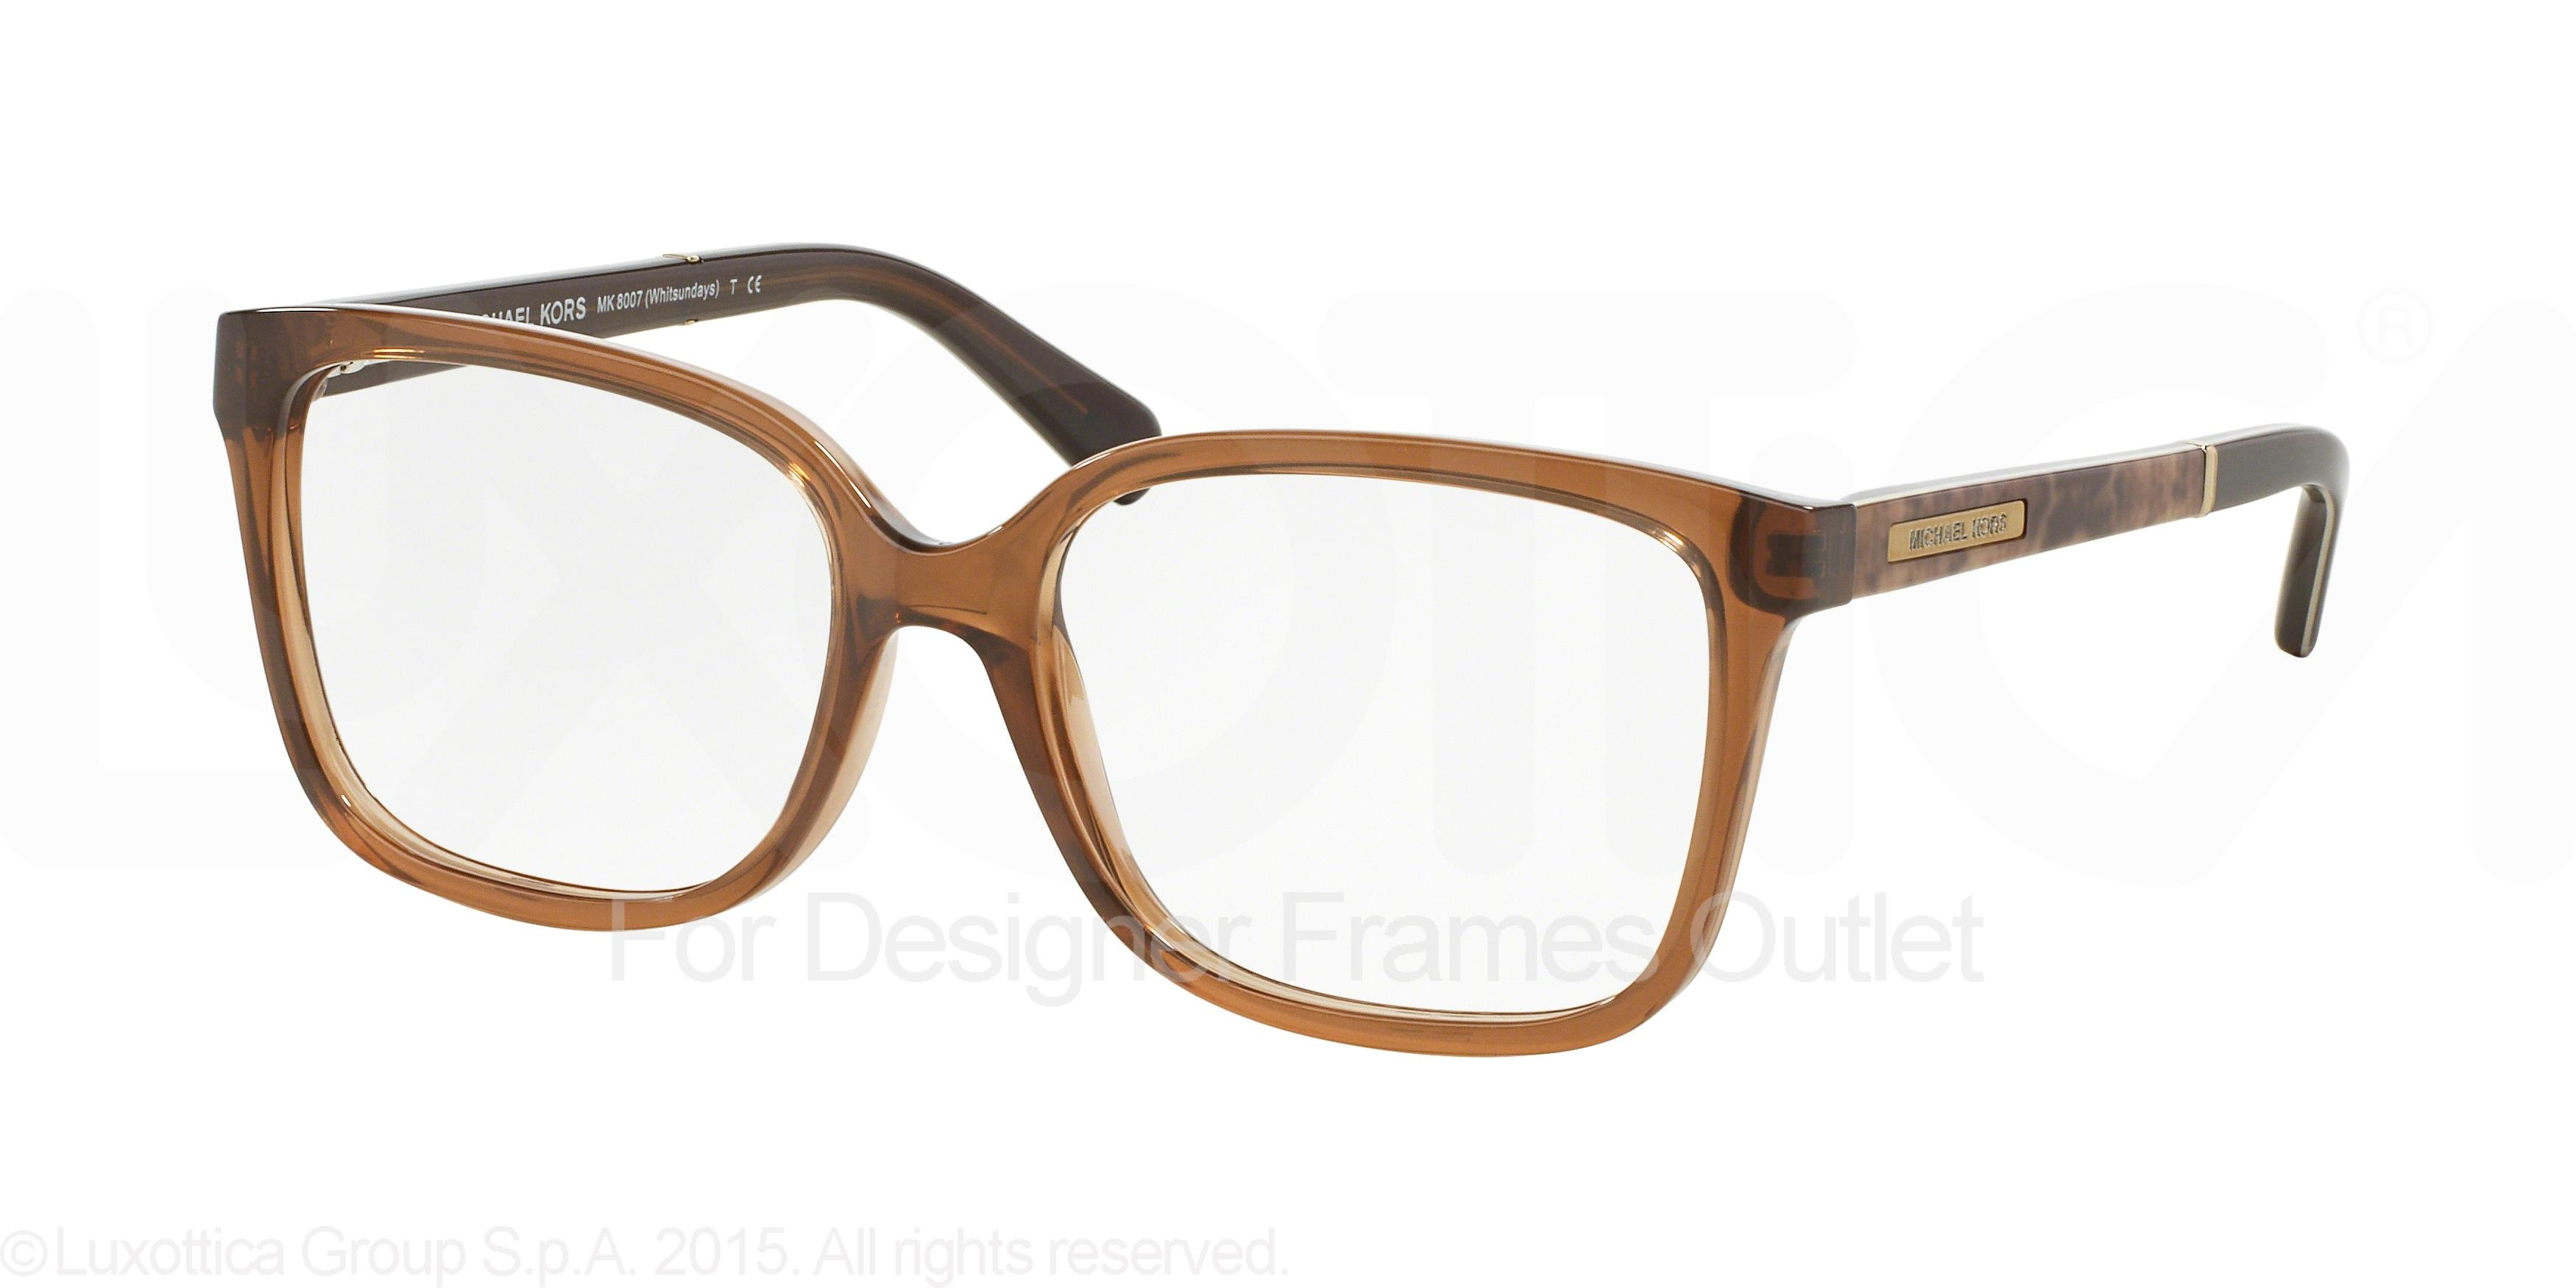 d6909f93063 Michael Kors Eyeglasses Outlet - Bitterroot Public Library